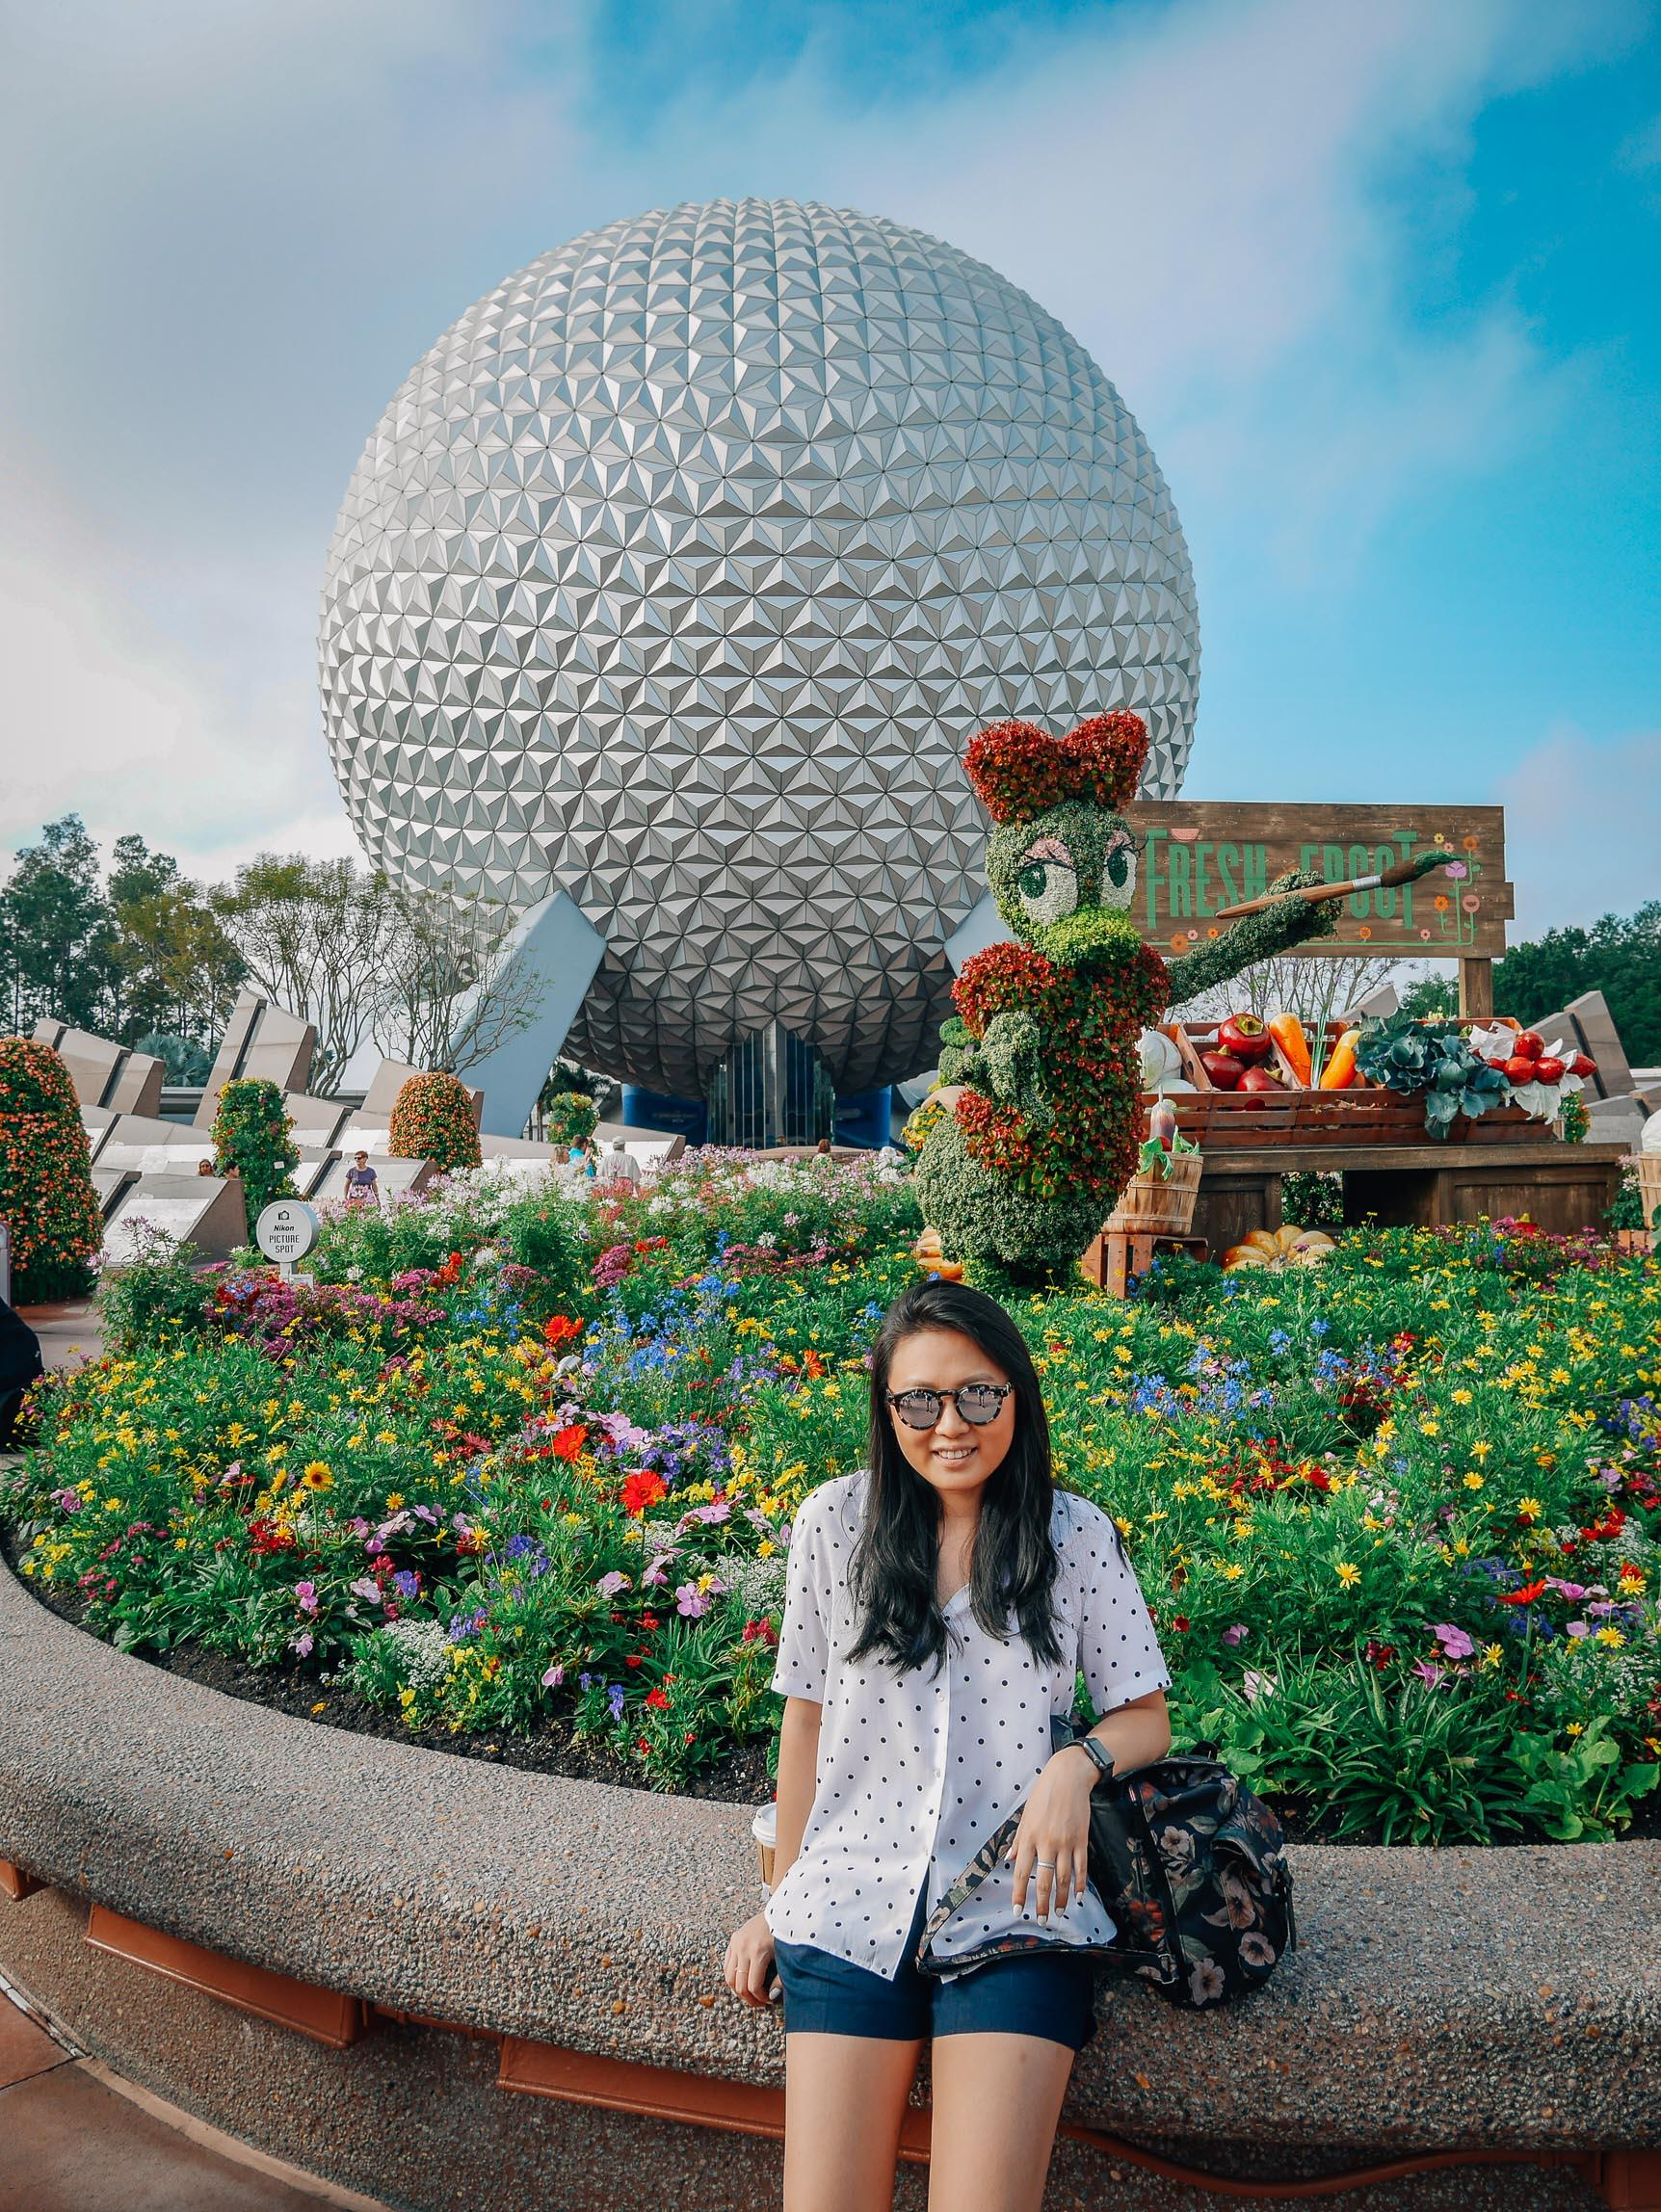 Jessica at the Entrace to EPCOT